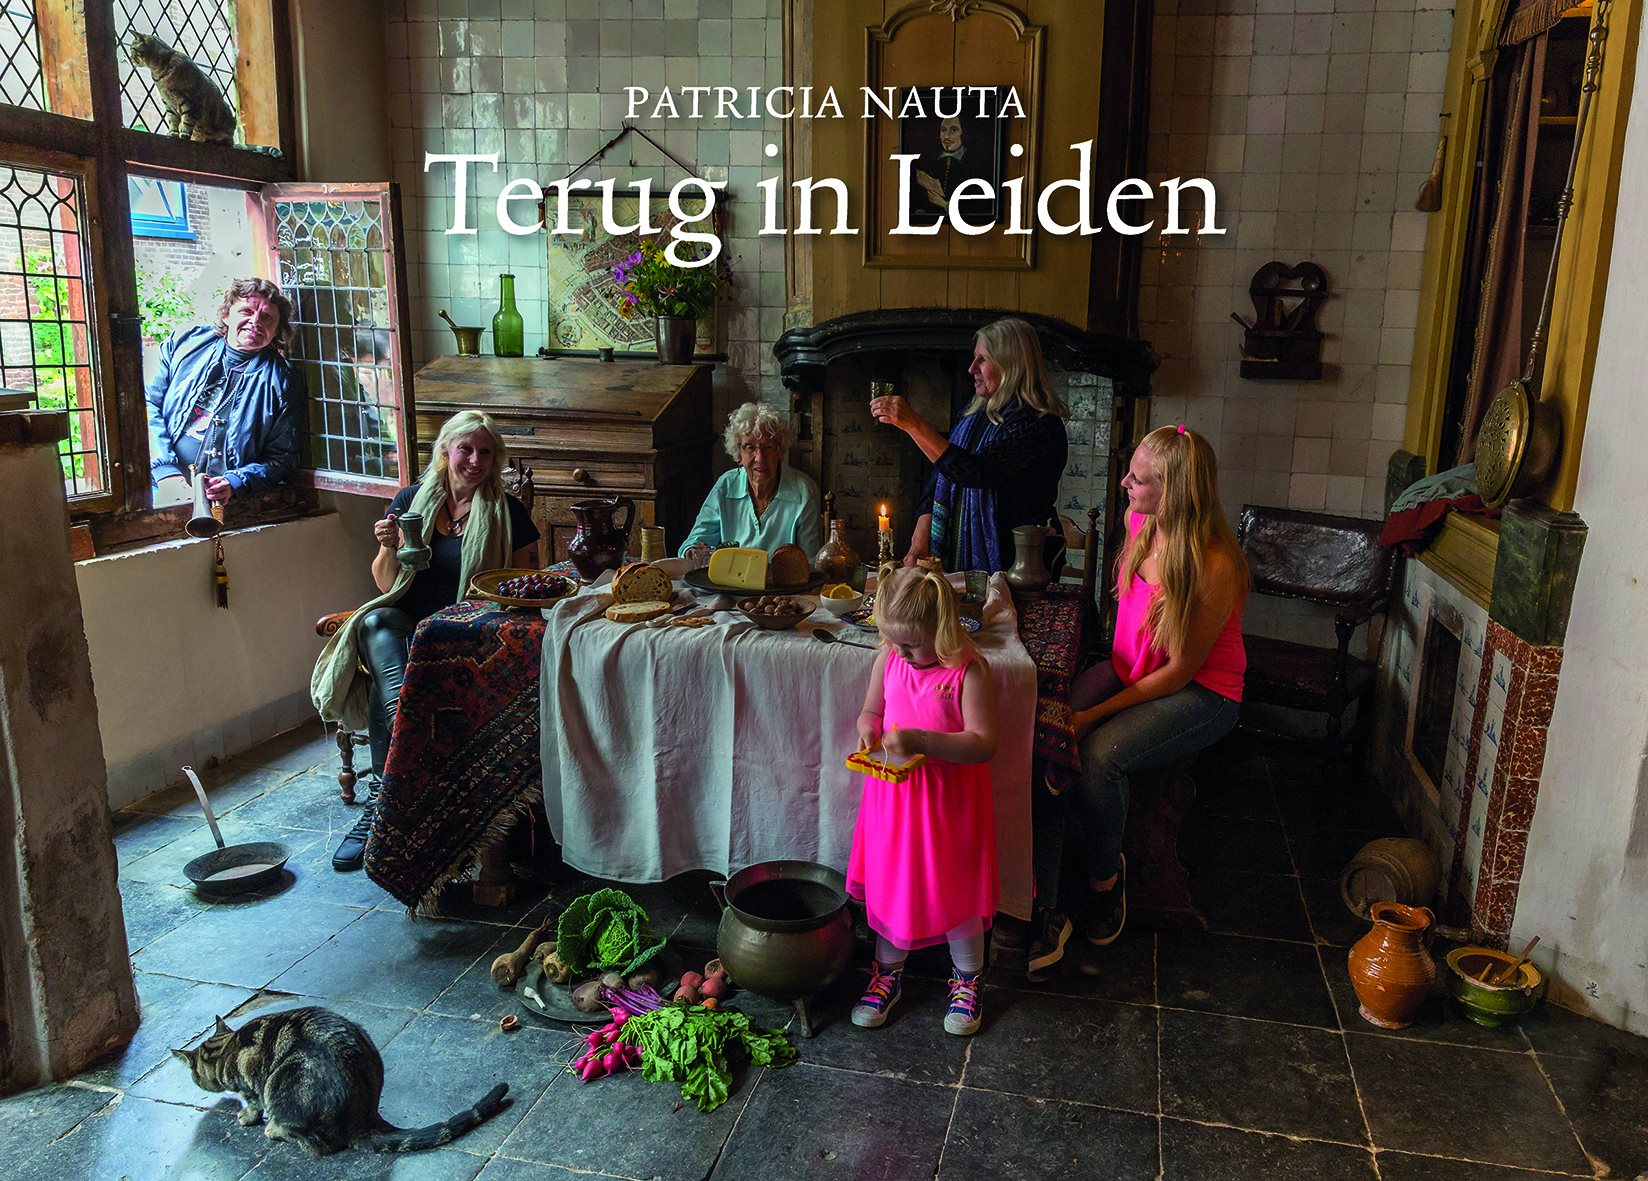 Patricia Nauta over Terug in Leiden